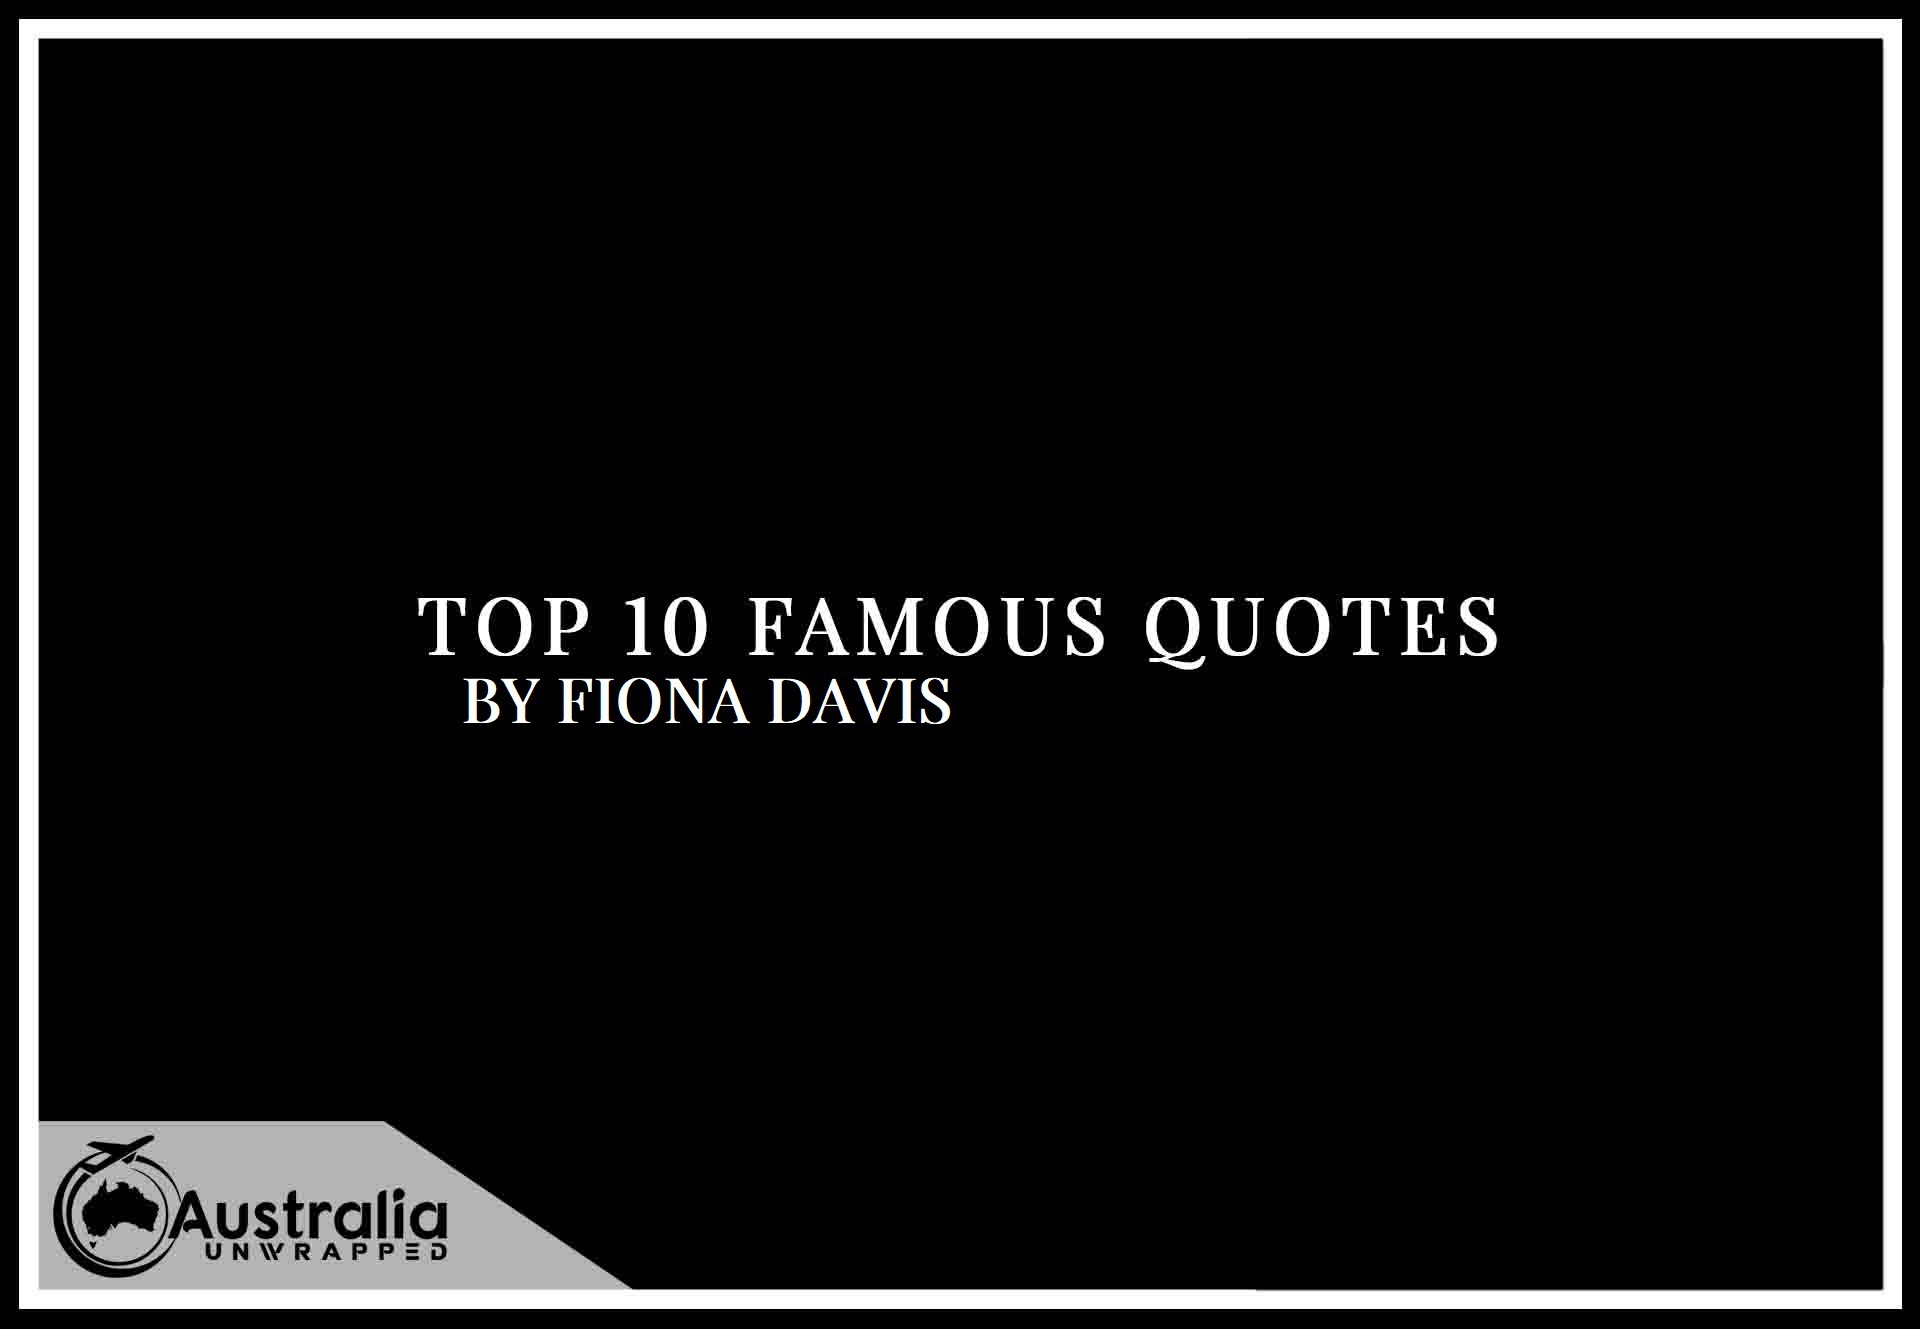 Top 10 Famous Quotes by Author Fiona Davis